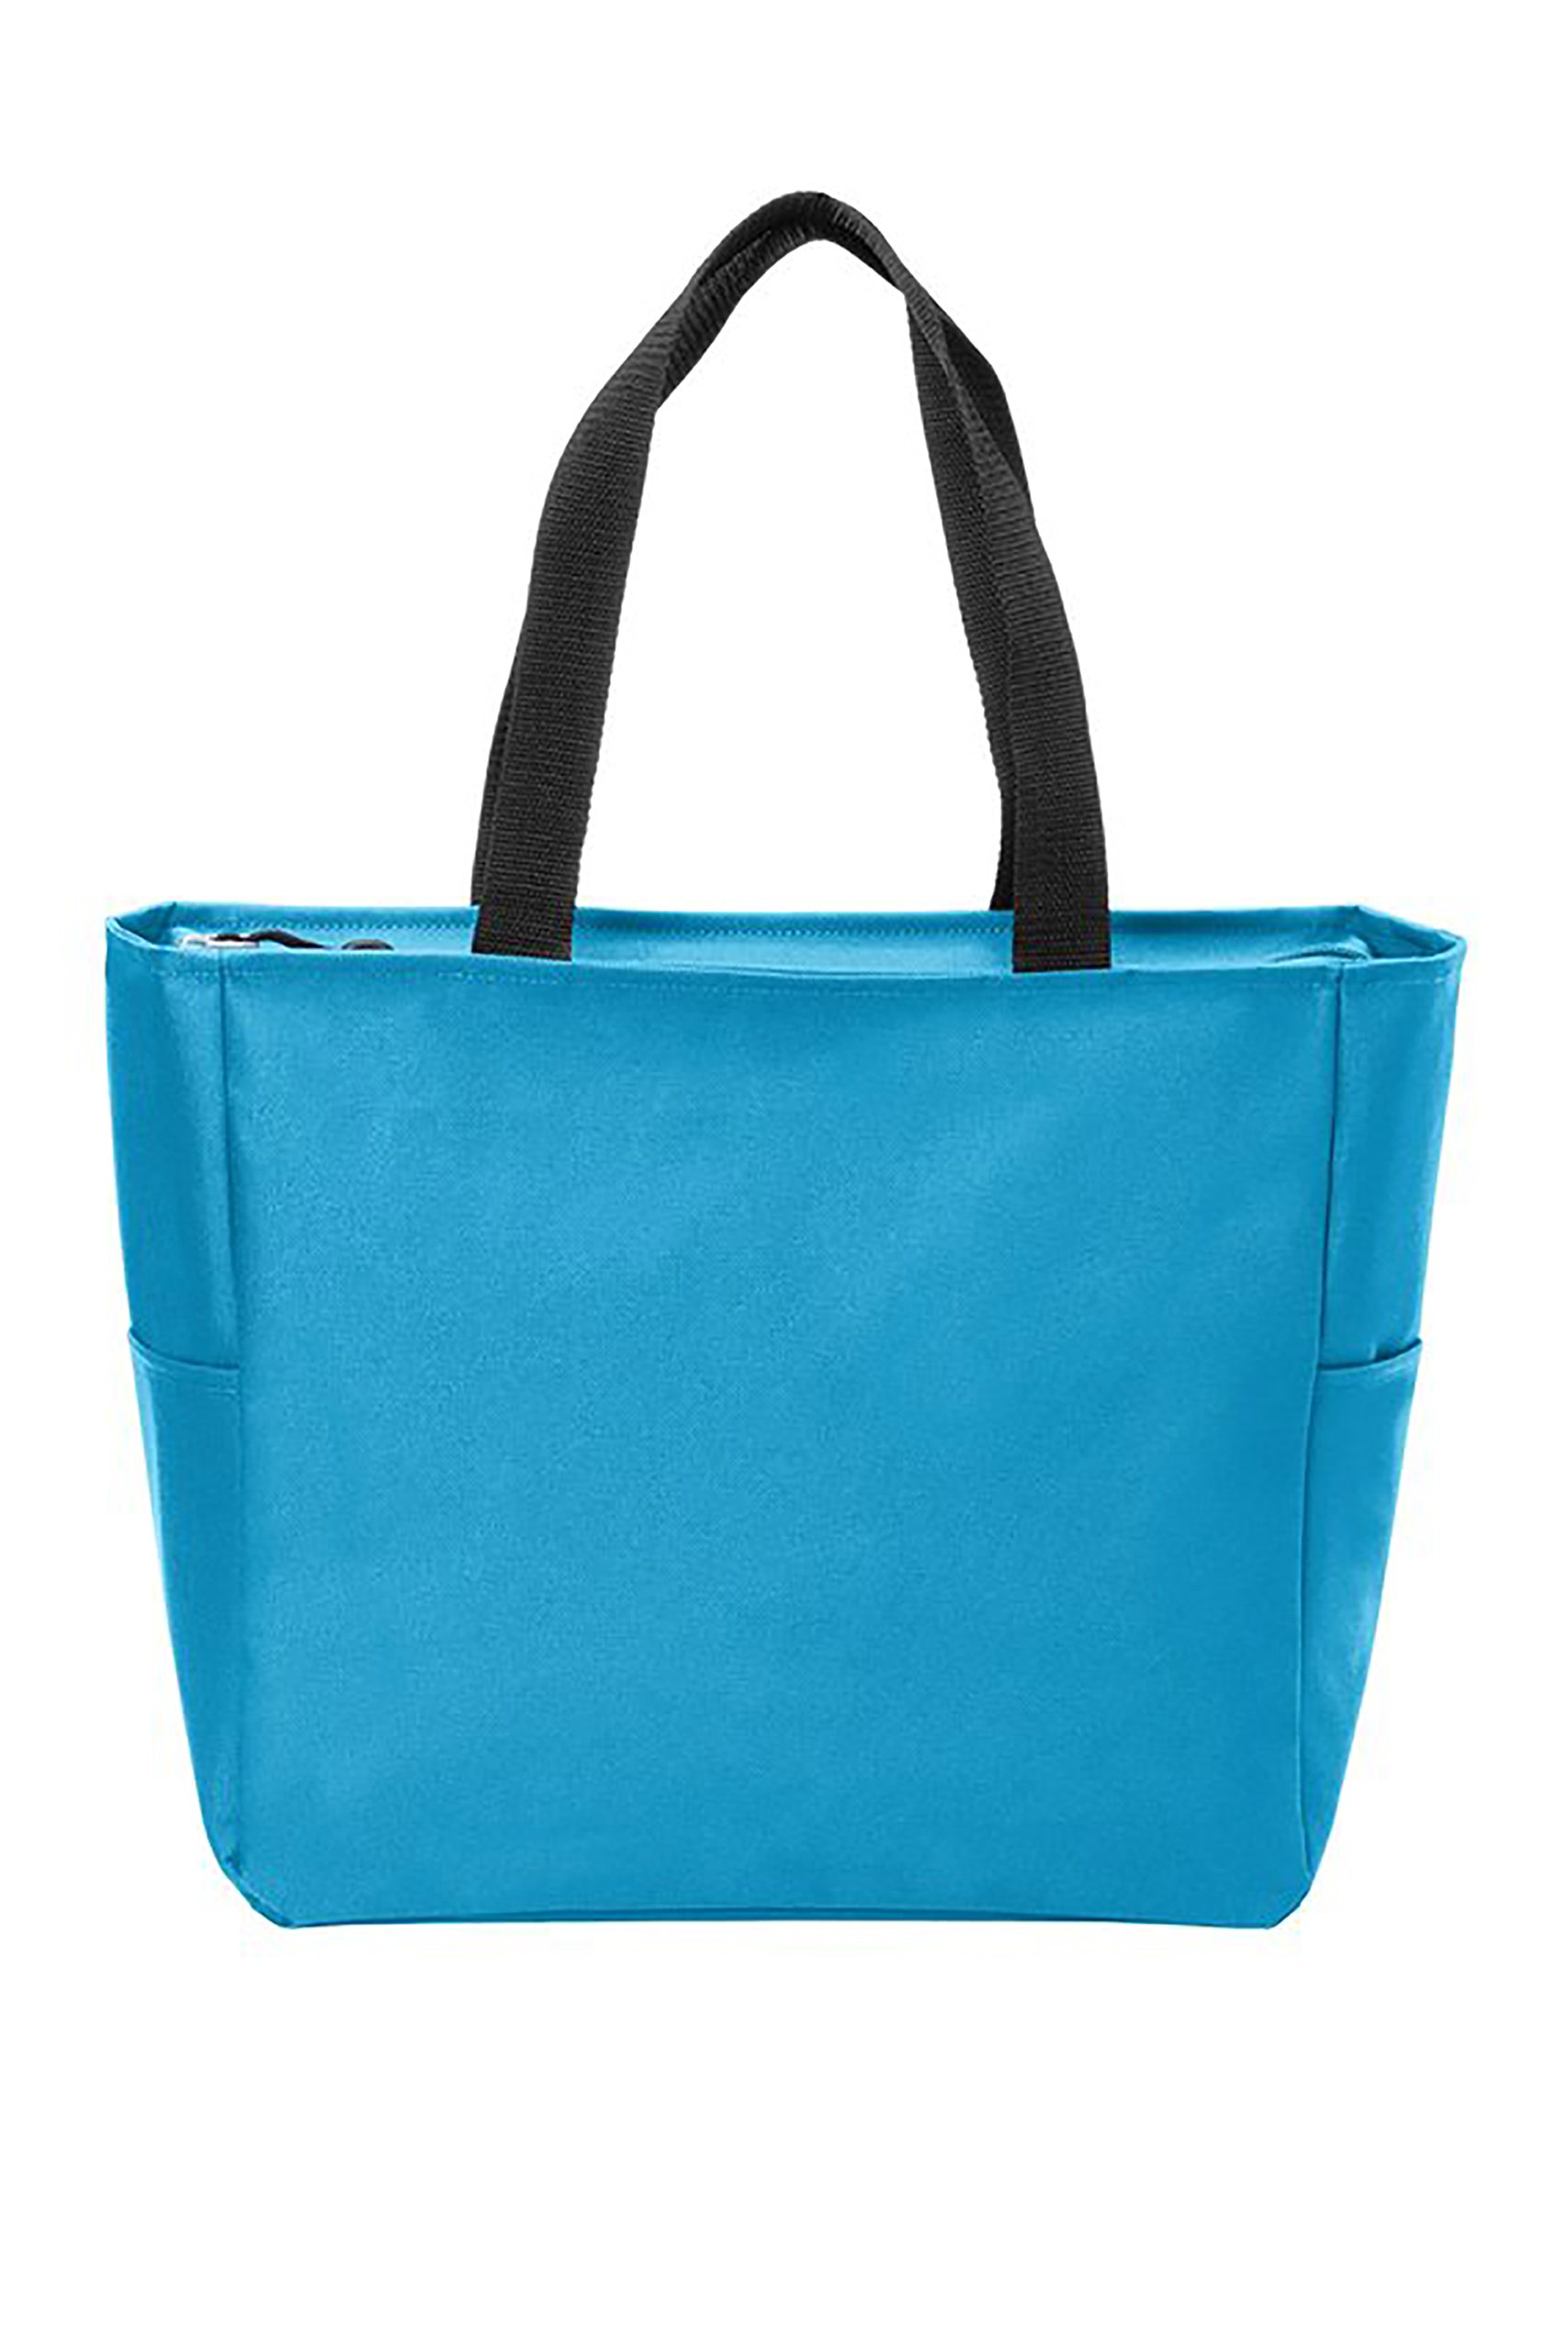 Essential Zip Tote Polyester Canvas Tote Bag with Zipper Top Closure and Two end pockets (1, Turquoise)